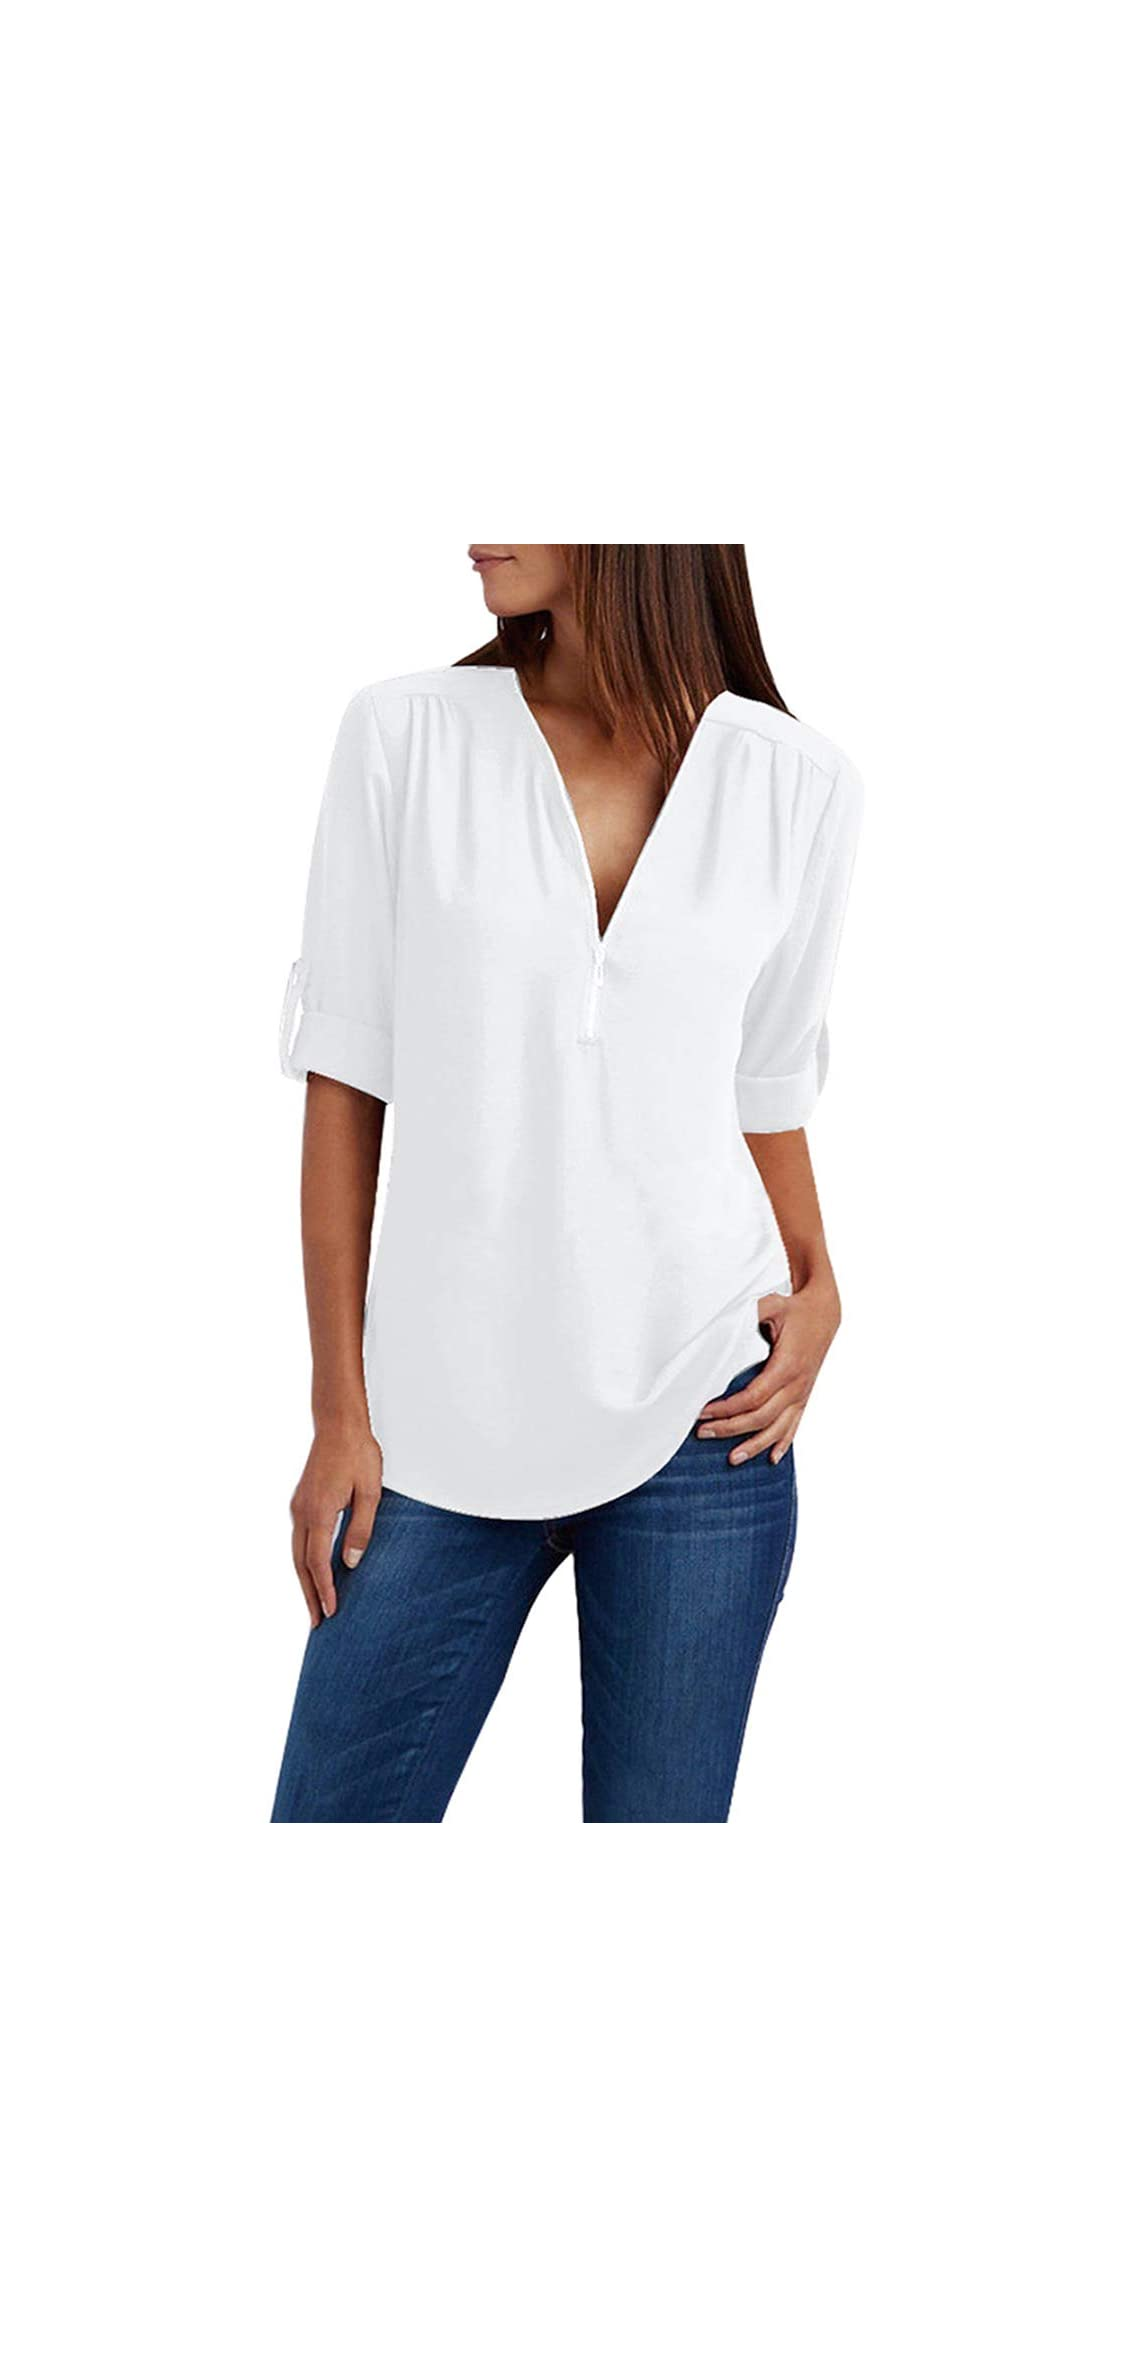 Women's Chiffon Blouse Roll-up Sleeve V Neck Zipper Casual